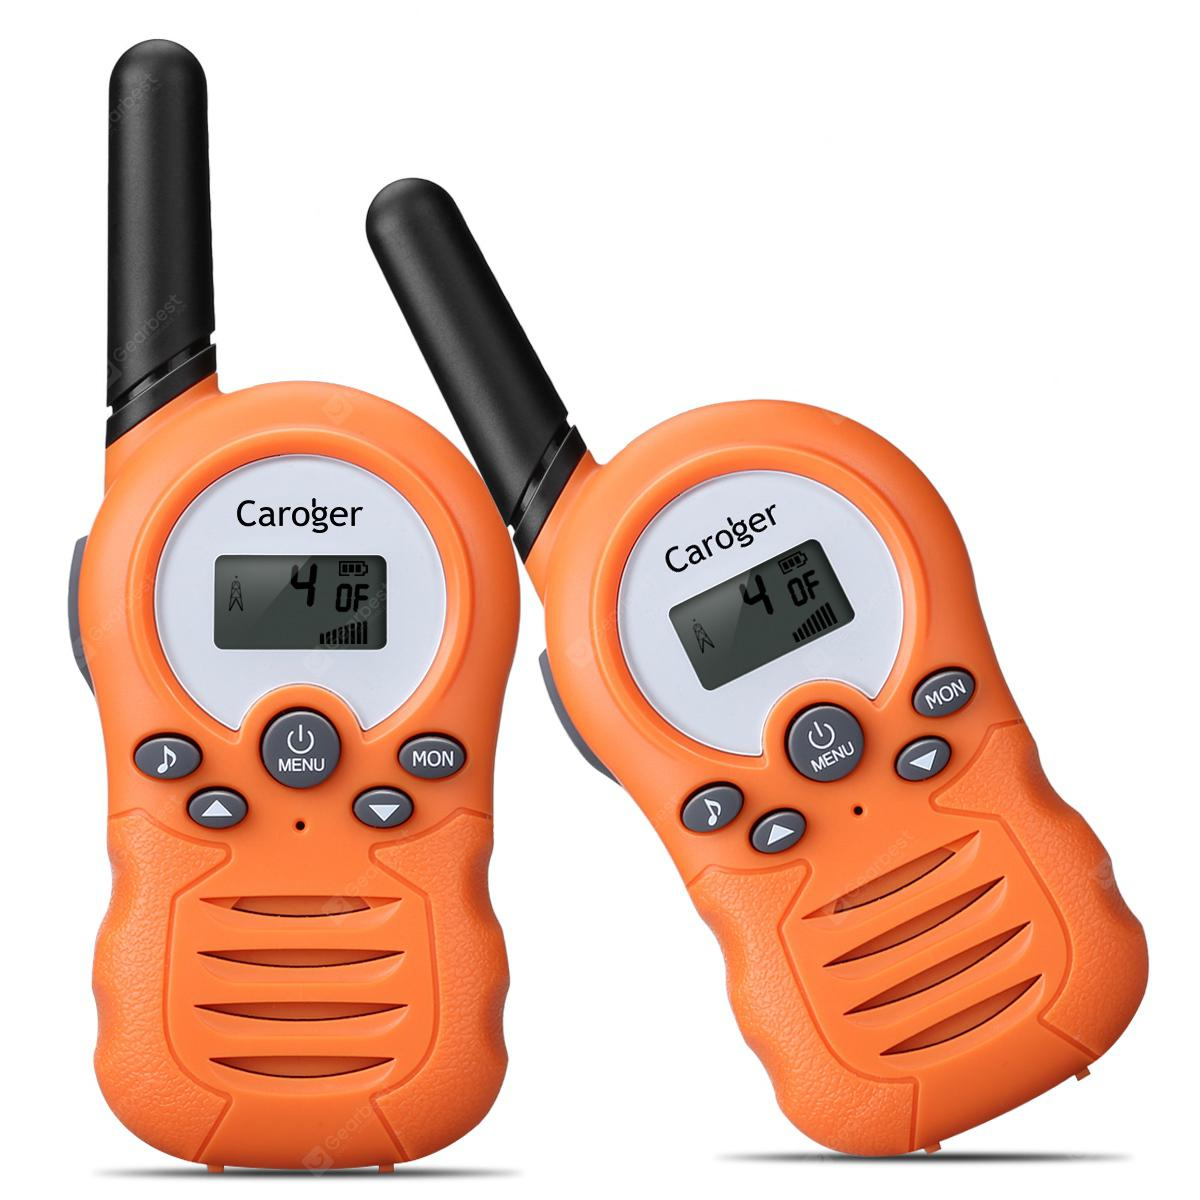 Caroger CR388A Lizenz-Free Walkie-Talkies 22packs 2 Kanal FRS / GMRS 462 / 467MHZ Zweiwegradio bis zu Meter 3300 / 2 Miles Bereich Handinterfon orange - orange papaya